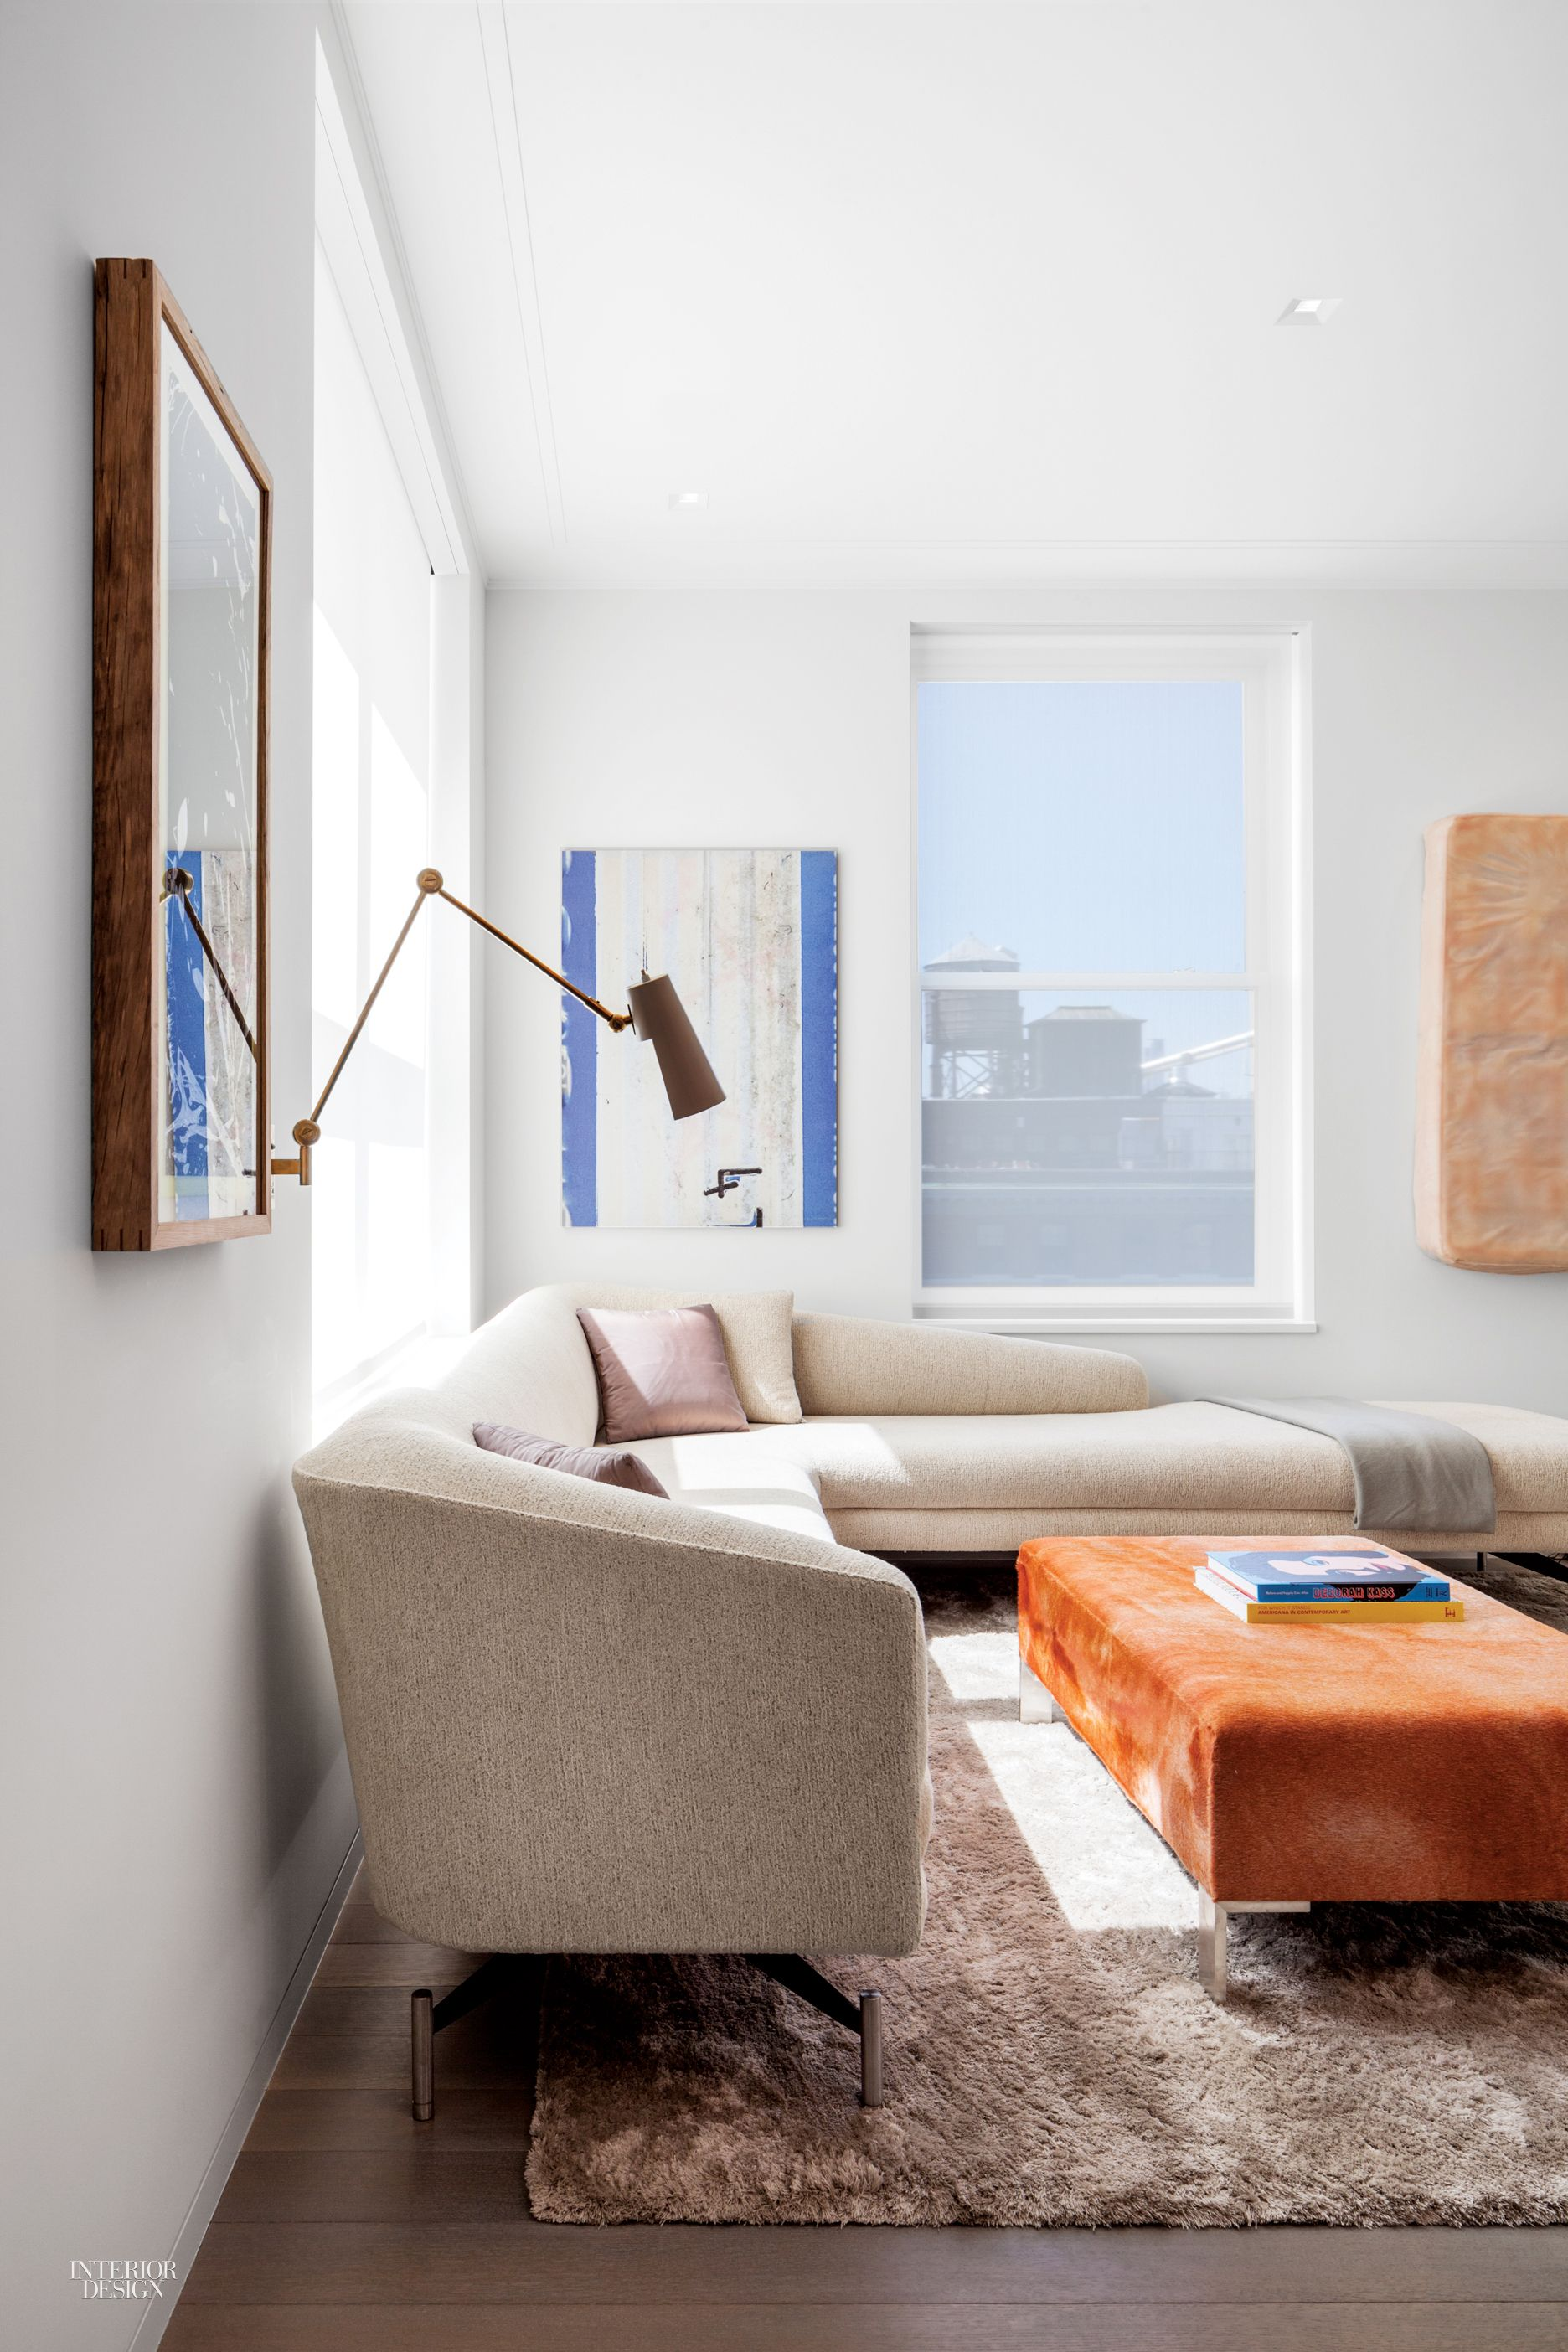 An artfilled nyc duplex by steven harris and lucien rees roberts